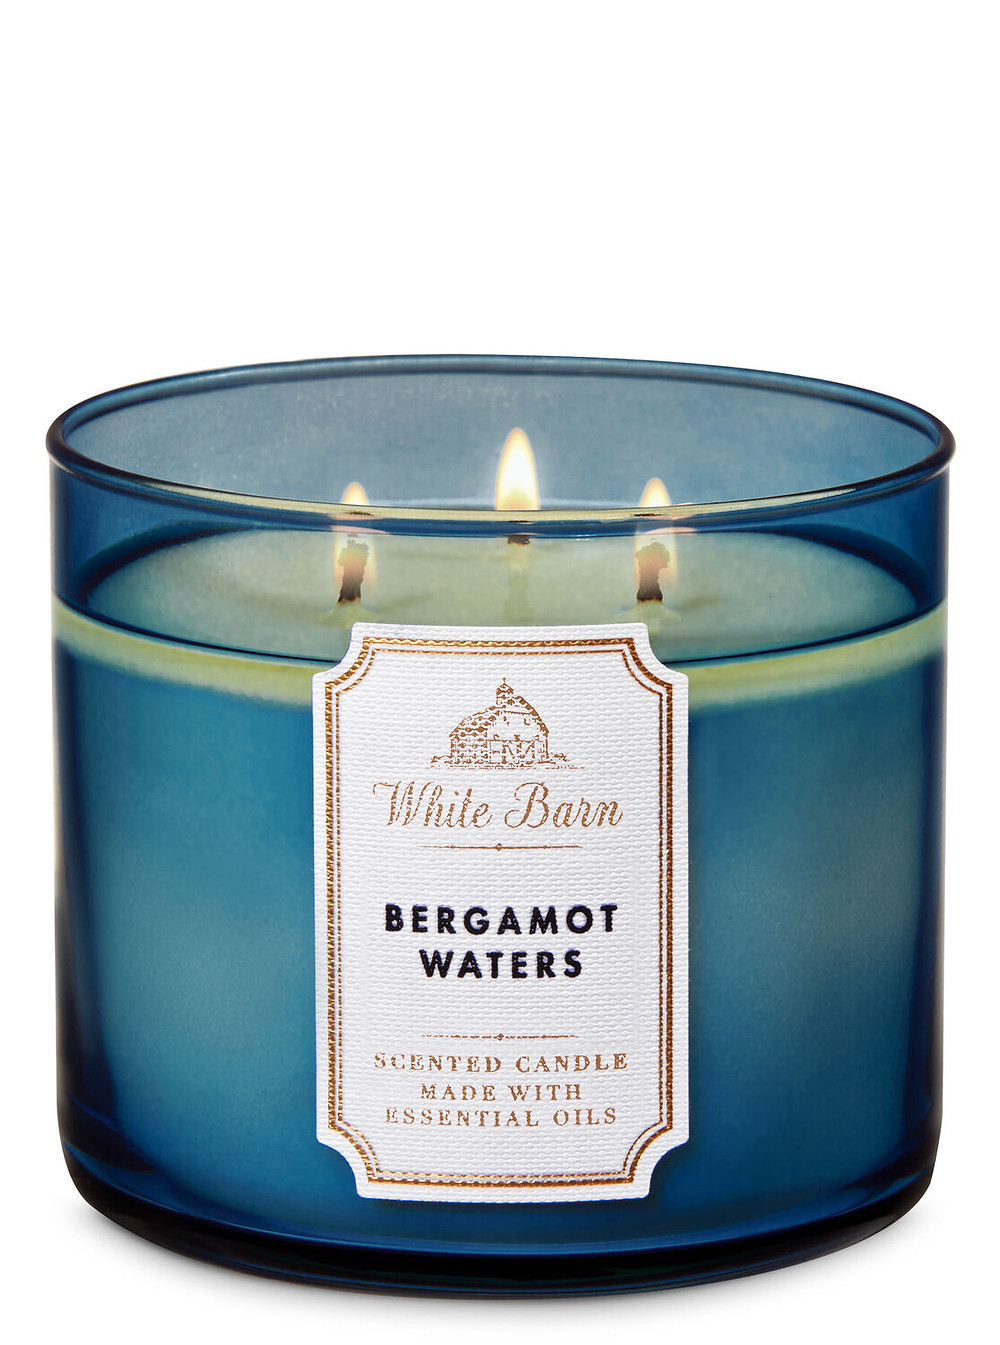 Bath & Body Works Bergamot Waters (3 Wick) Candle